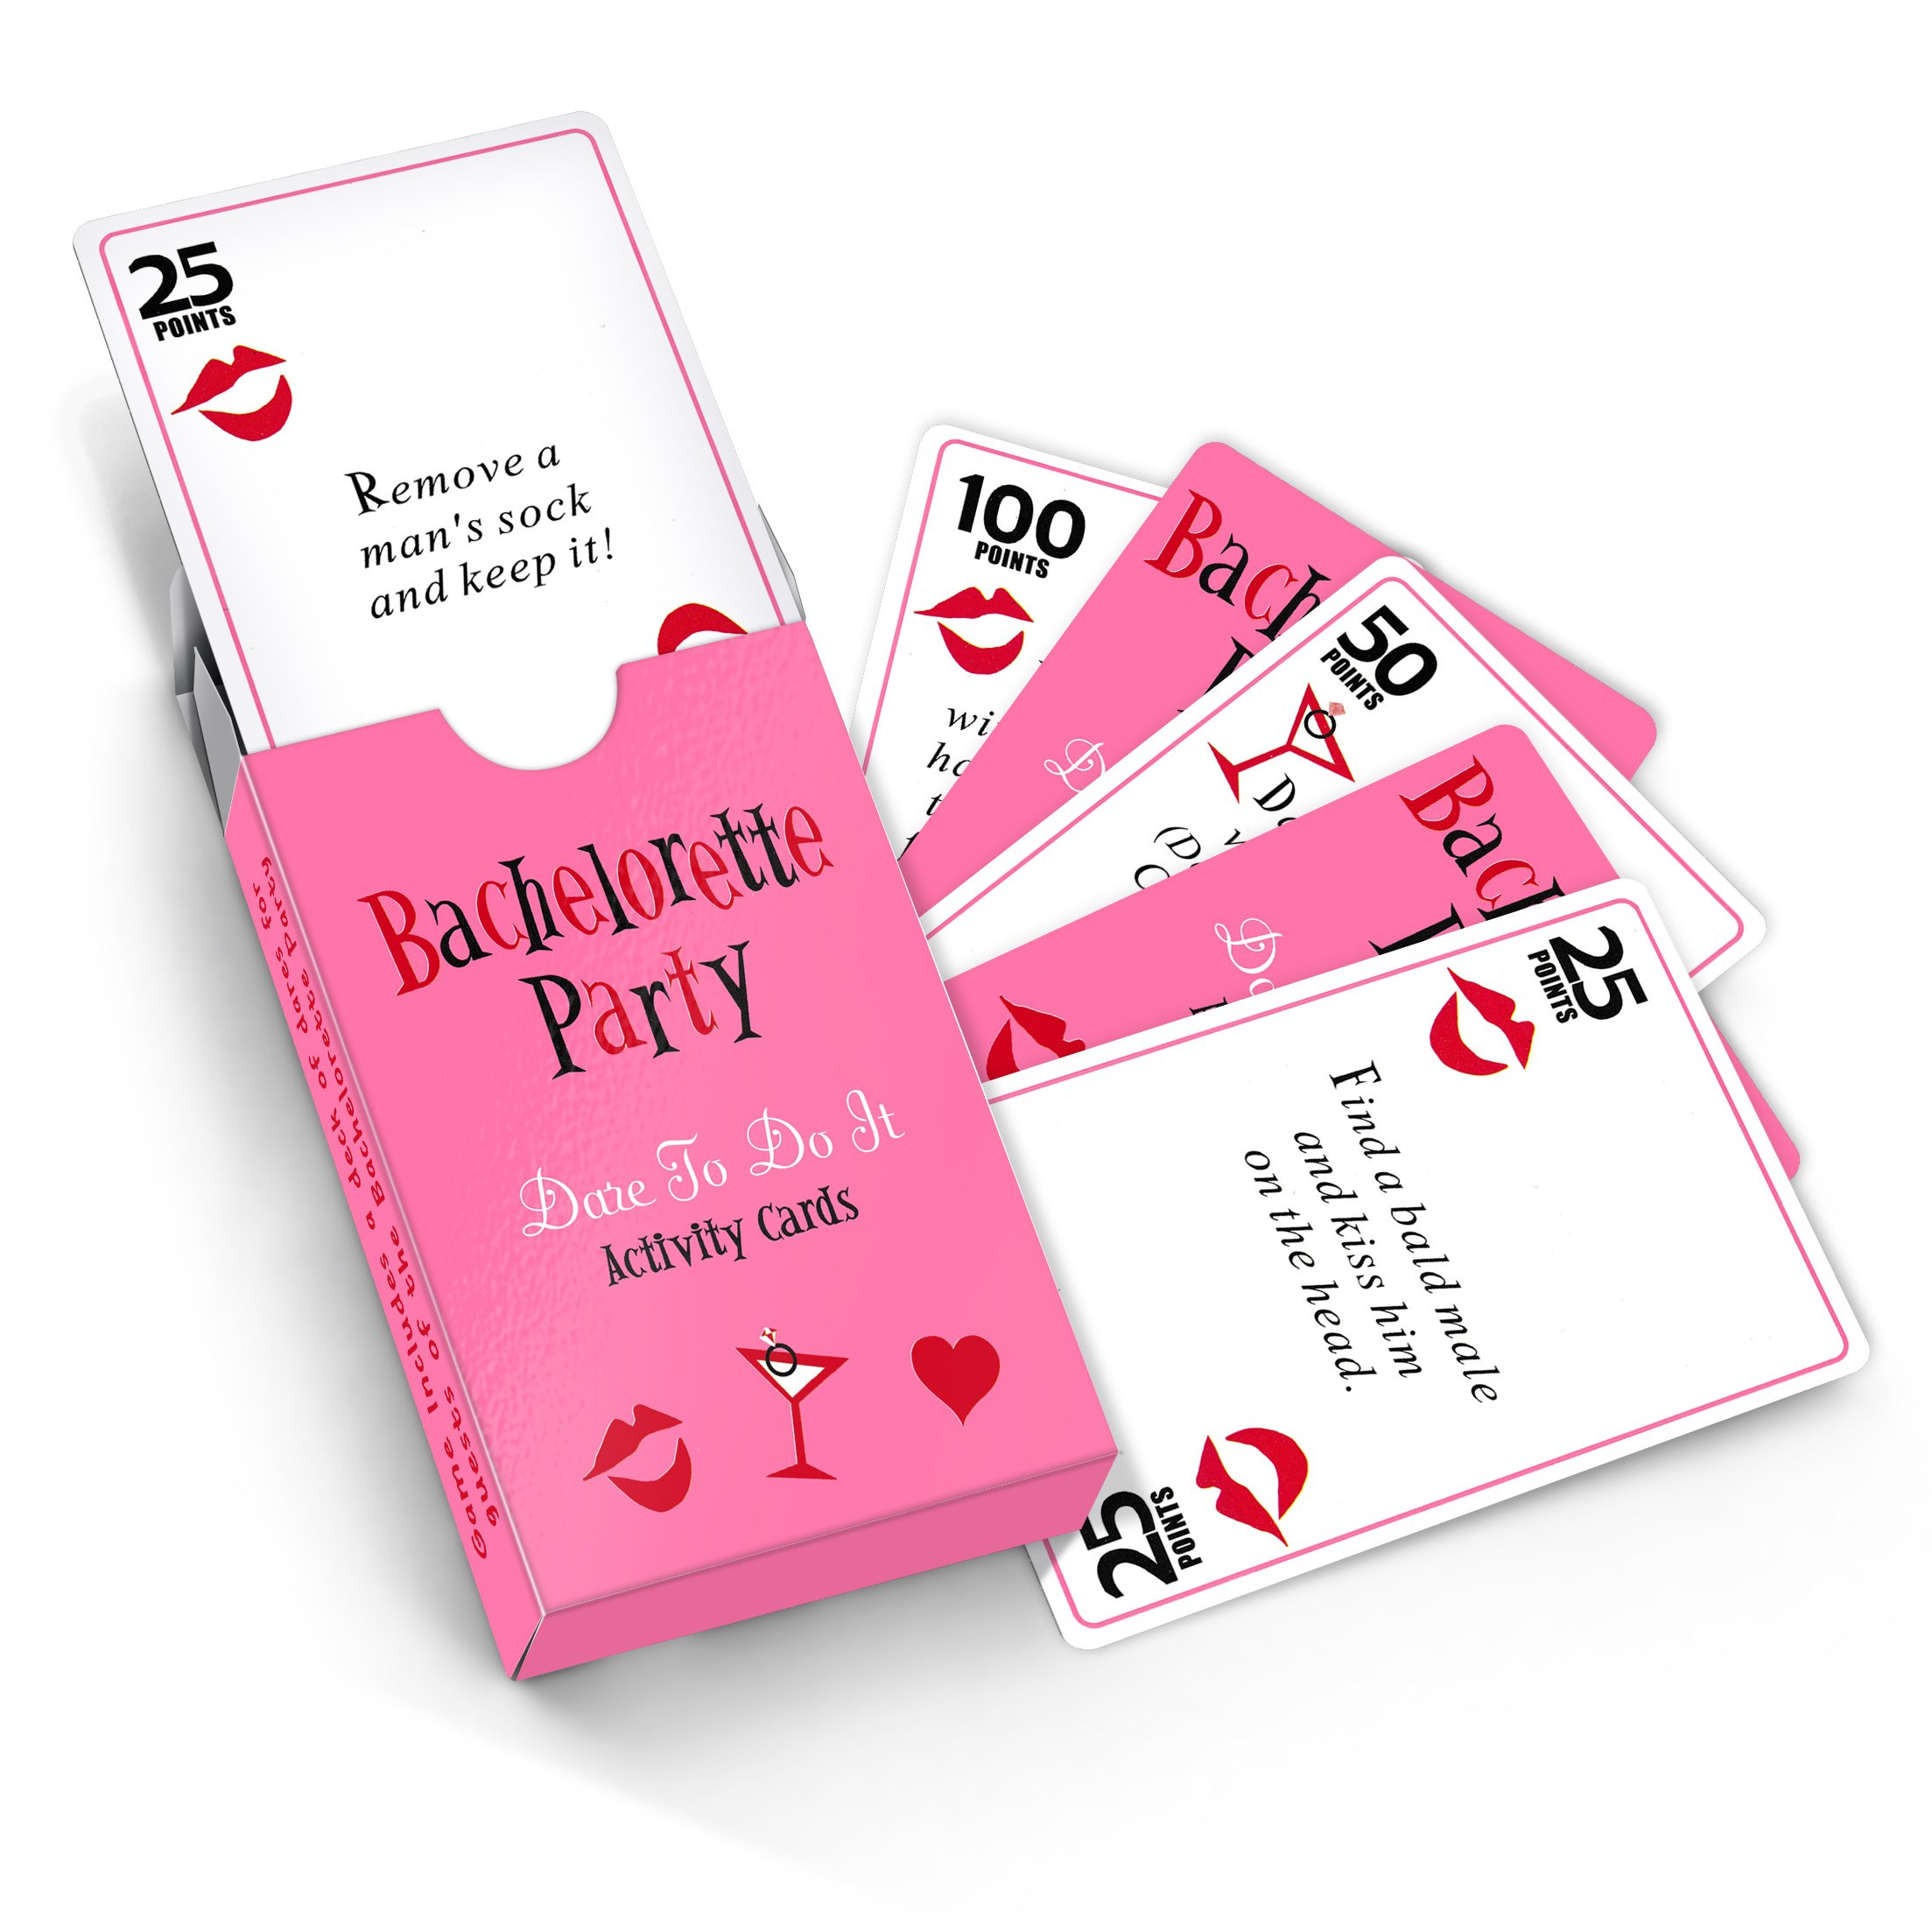 52 Card Bachelorette Party Dare Game With Drinking & Scavenger Hunt Cards - Fun Bridal Shower or Hen Party Supplies & Decorations Idea by Giftington